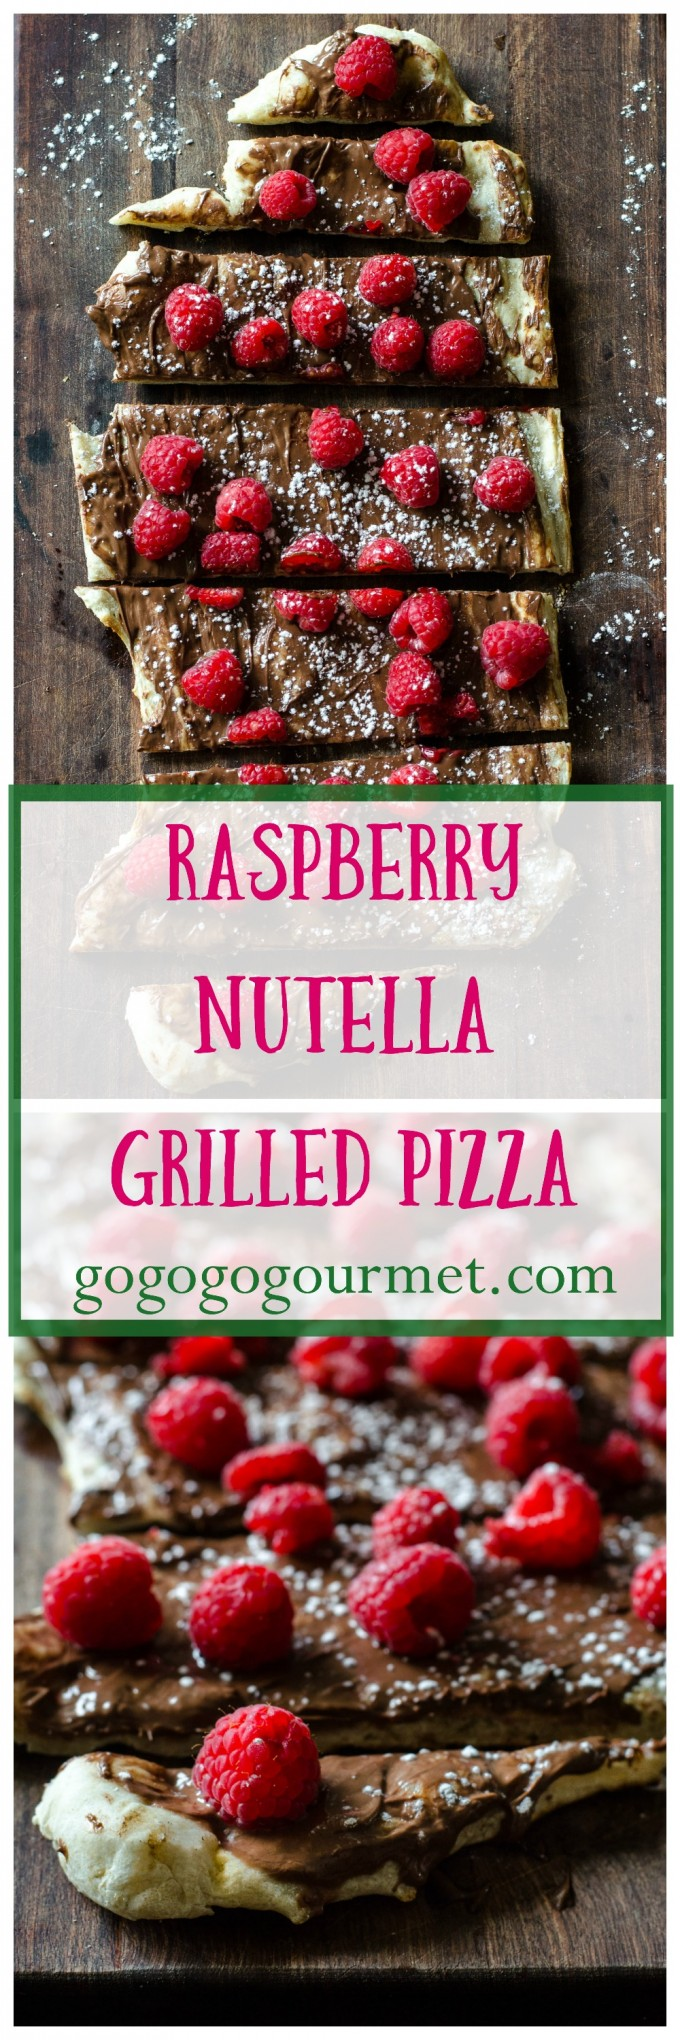 The grill isn't just for dinner anymore- check out this INCREDIBLE dessert pizza with Nutella and raspberries! | Raspberry Nutella Pizza | Go Go Go Gourmet @Go Go Go Gourmet